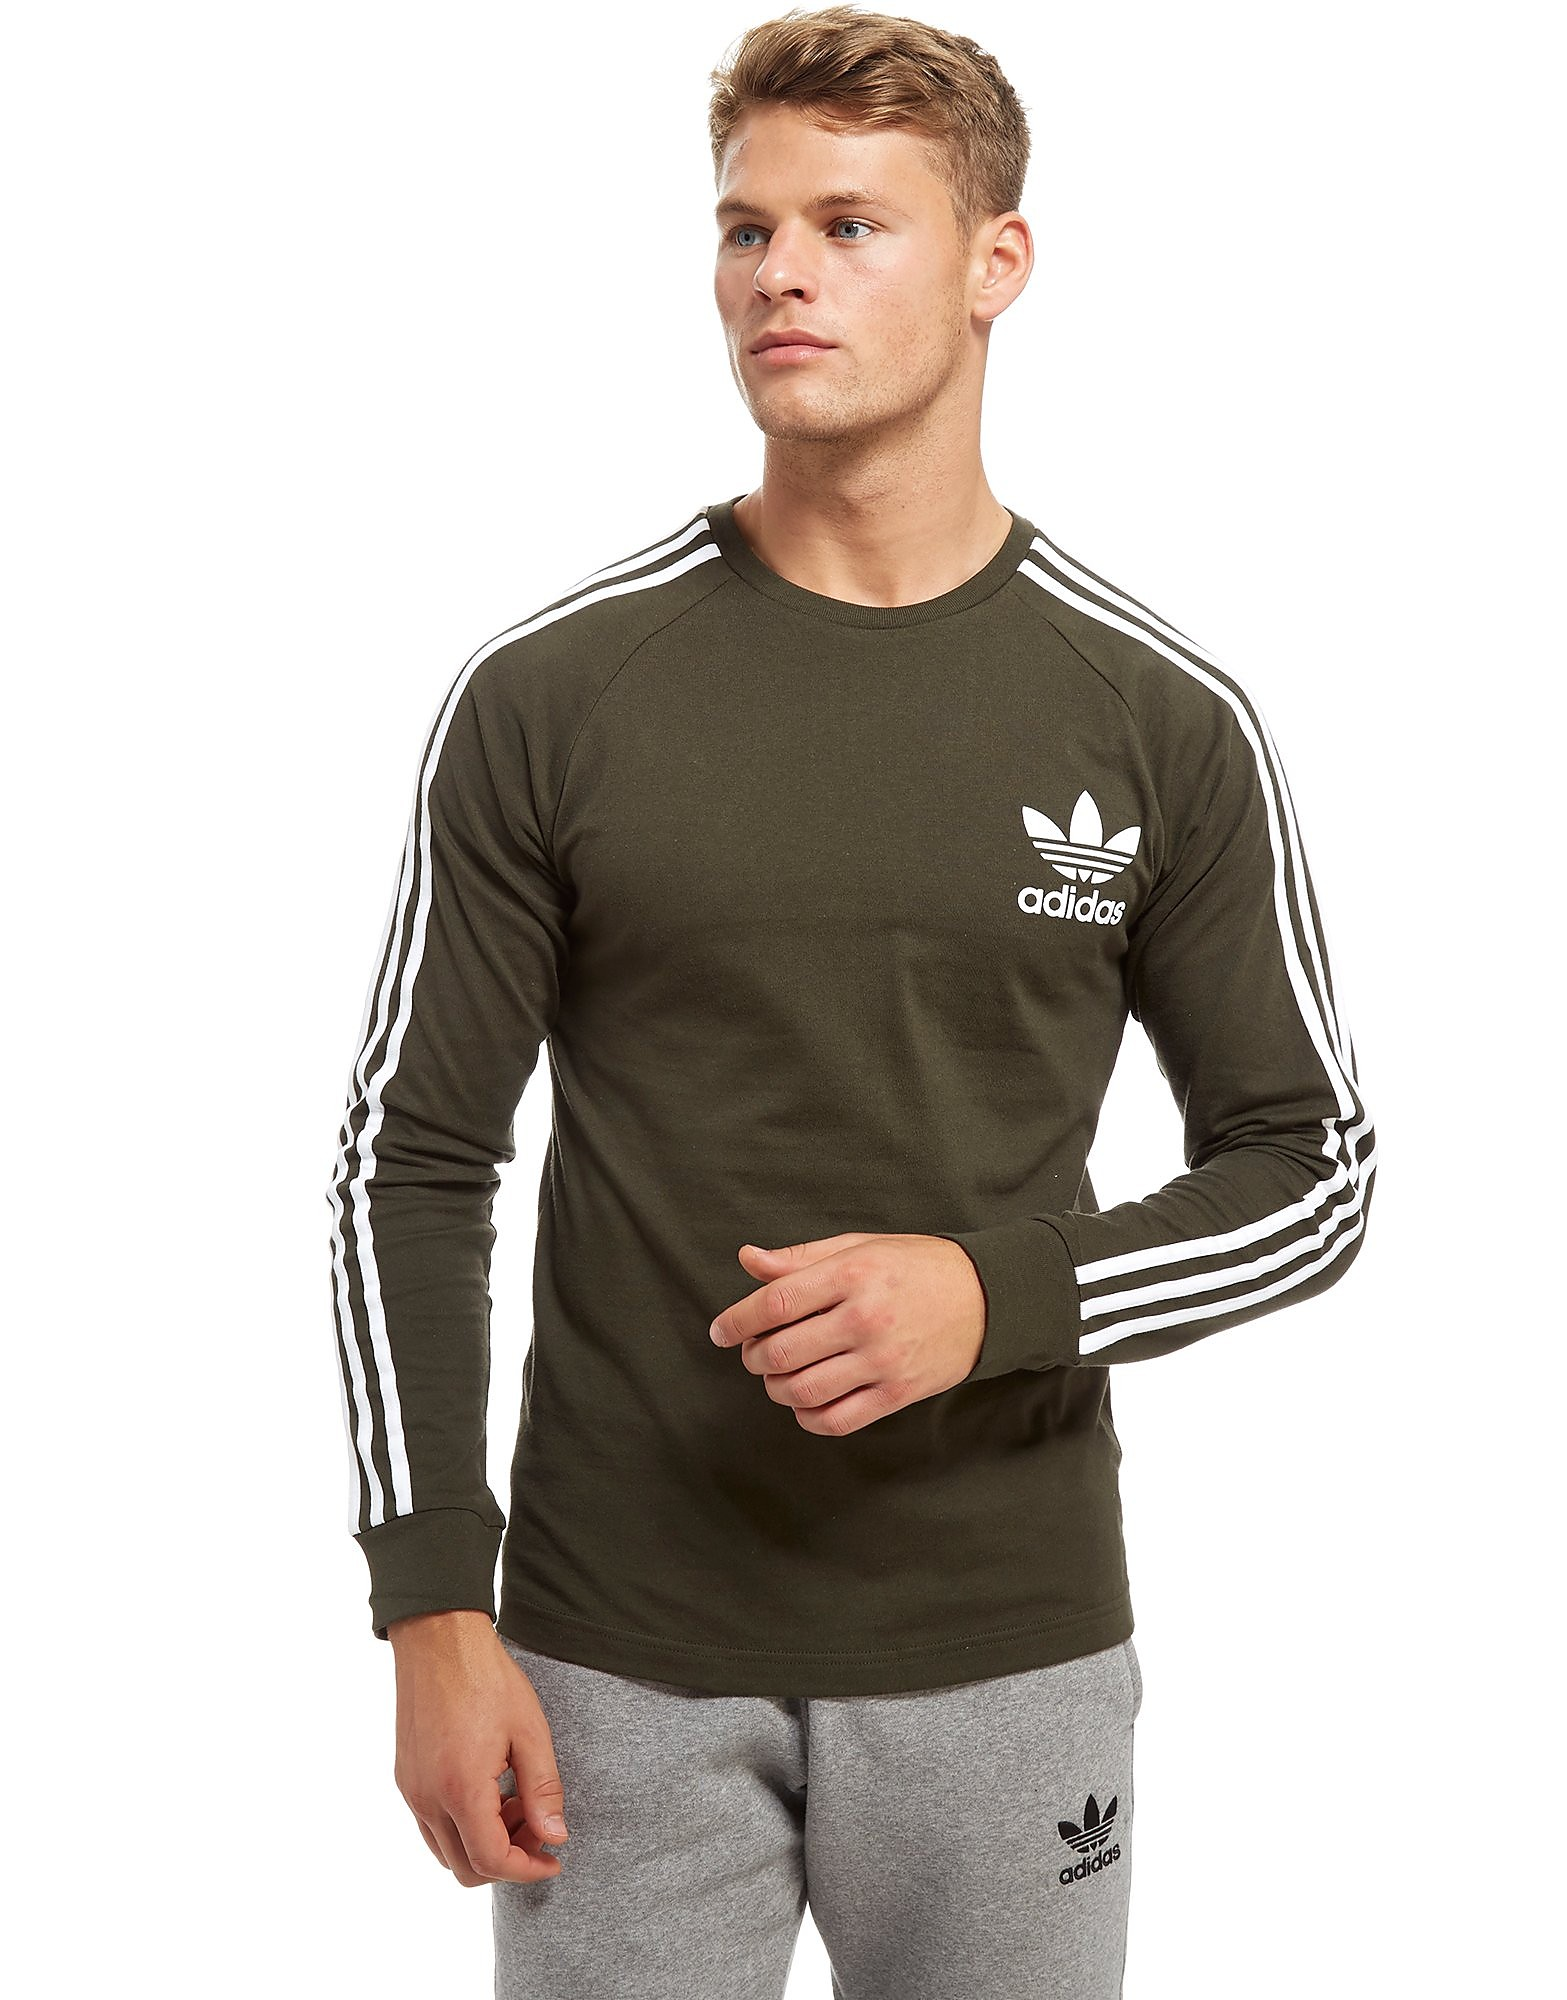 adidas Originals T-Shirt California Homme